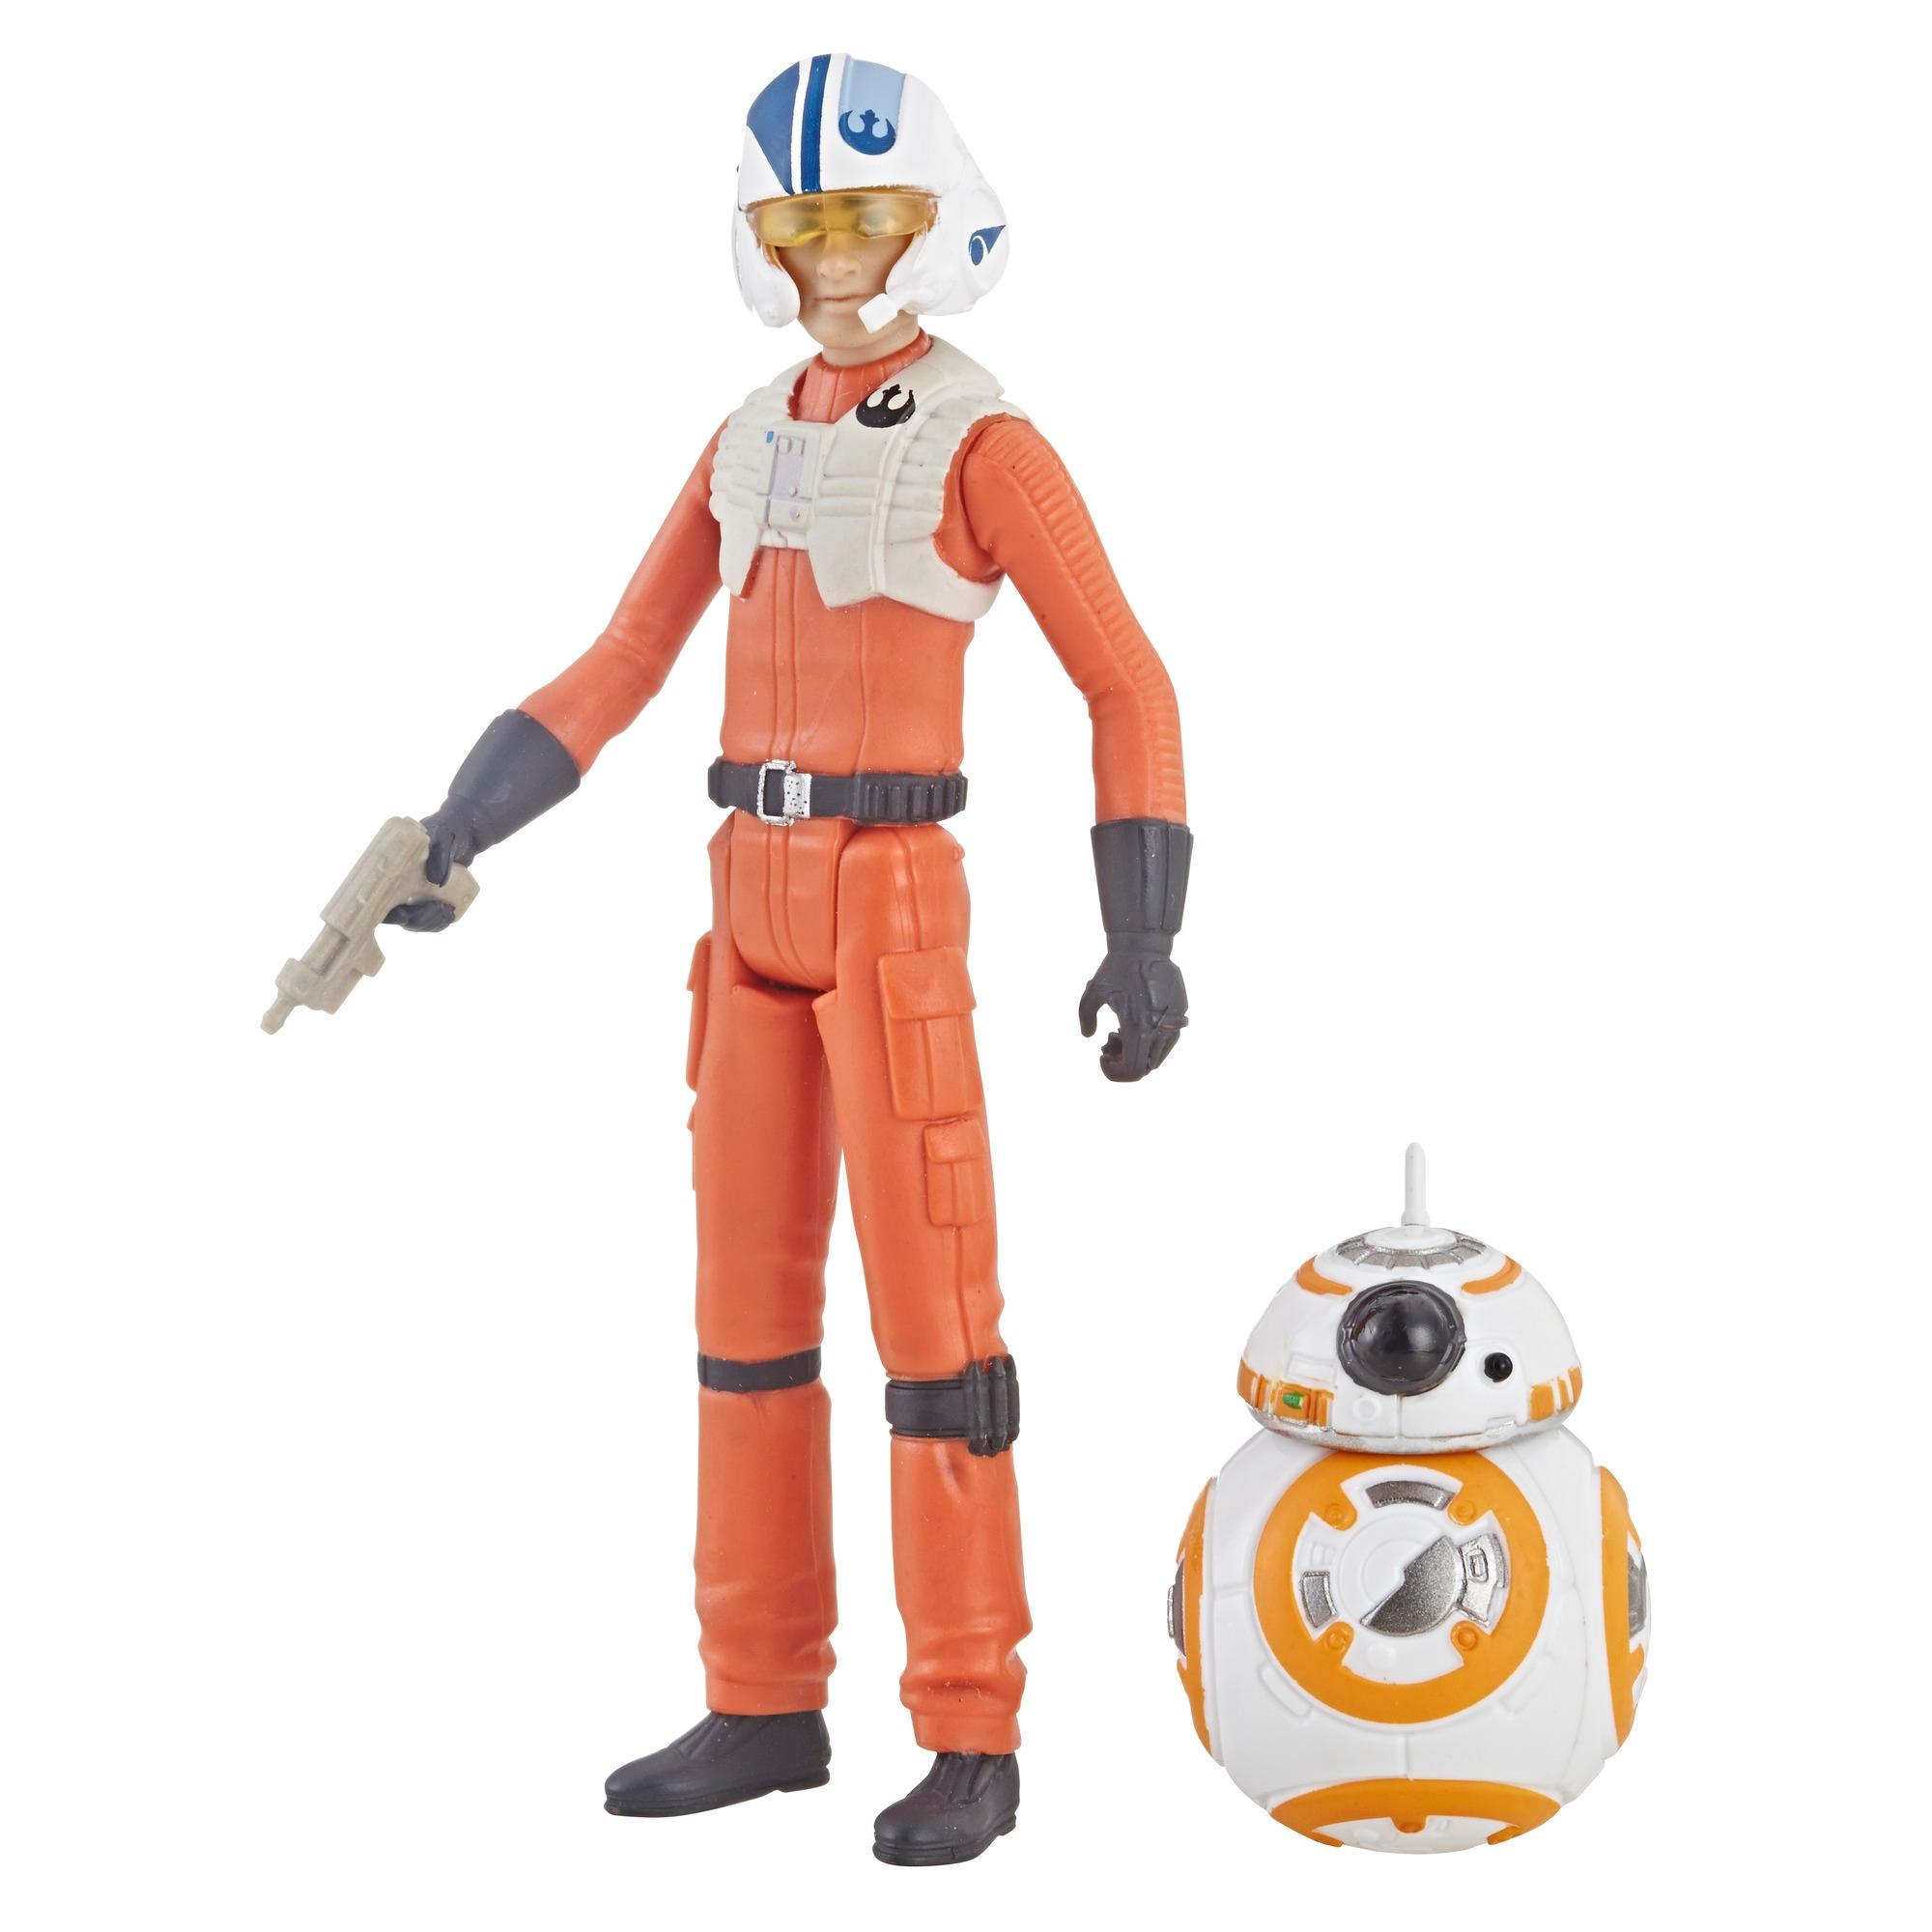 Star Wars Star Wars: Resistance Animated Series 3.75-inch Poe Dameron and BB-8 Figure 2-Pack